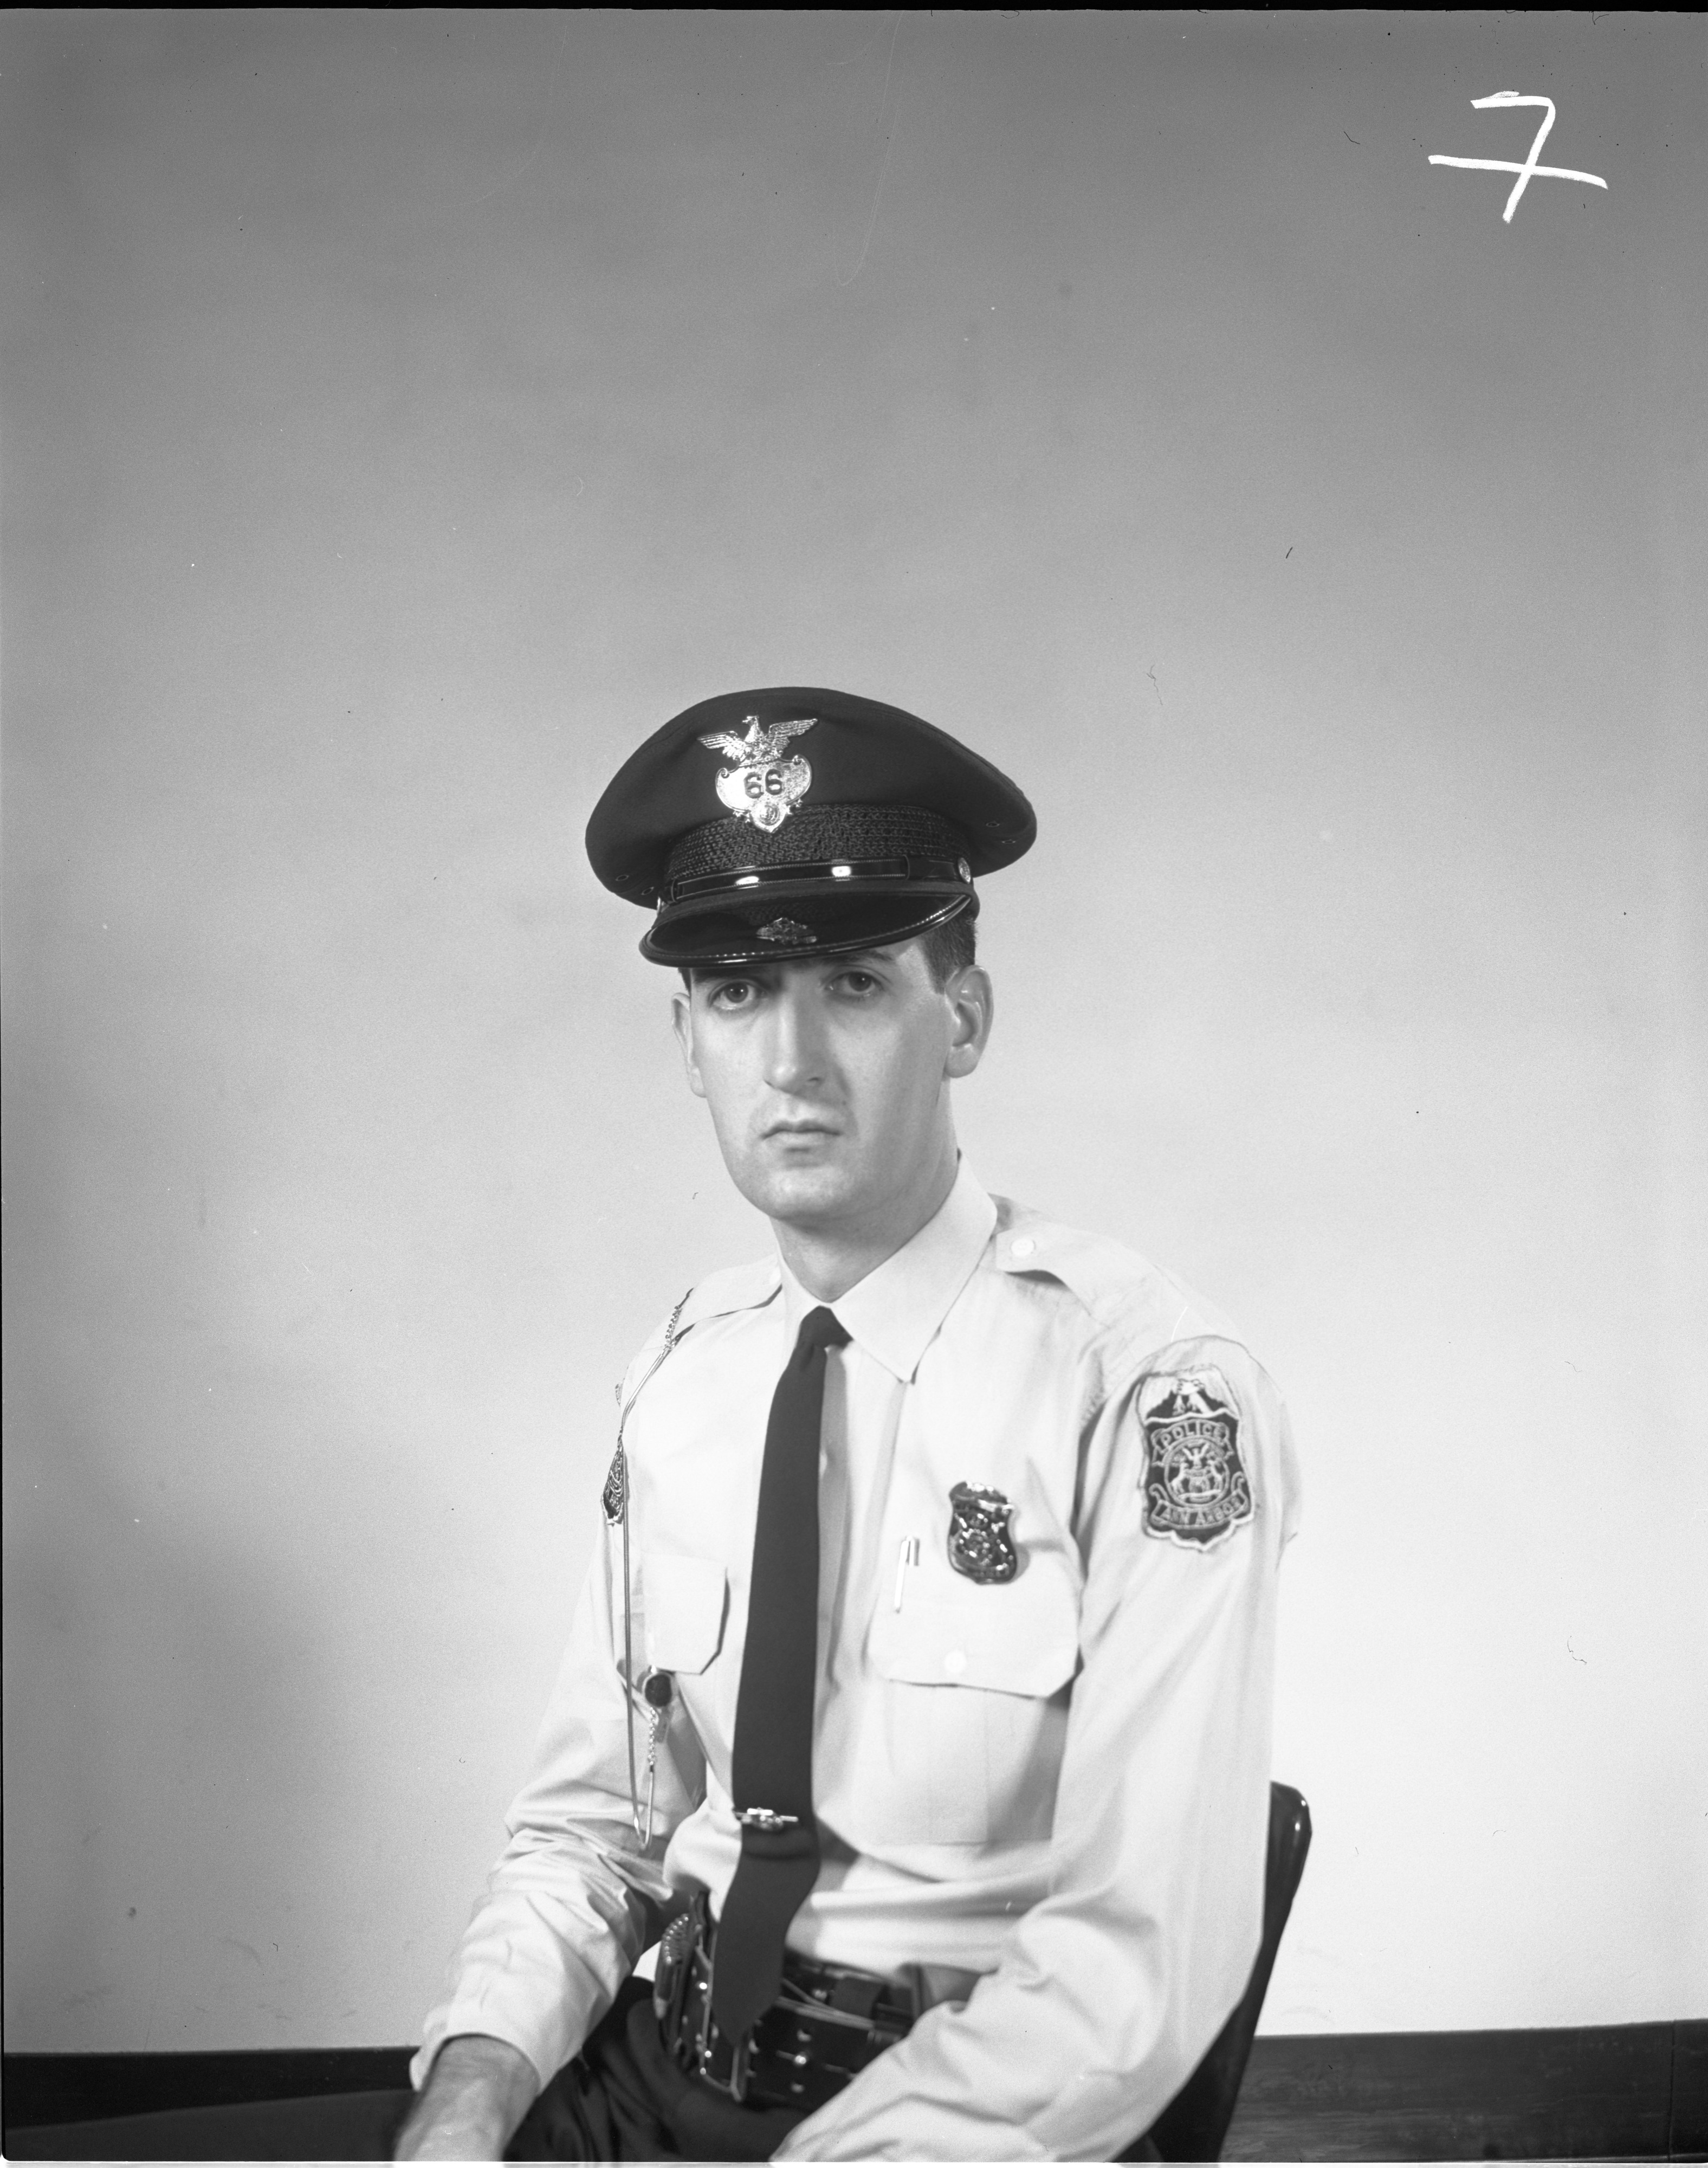 Ann Arbor Police Officer Lanny K. Lakowsky, May 1964 image